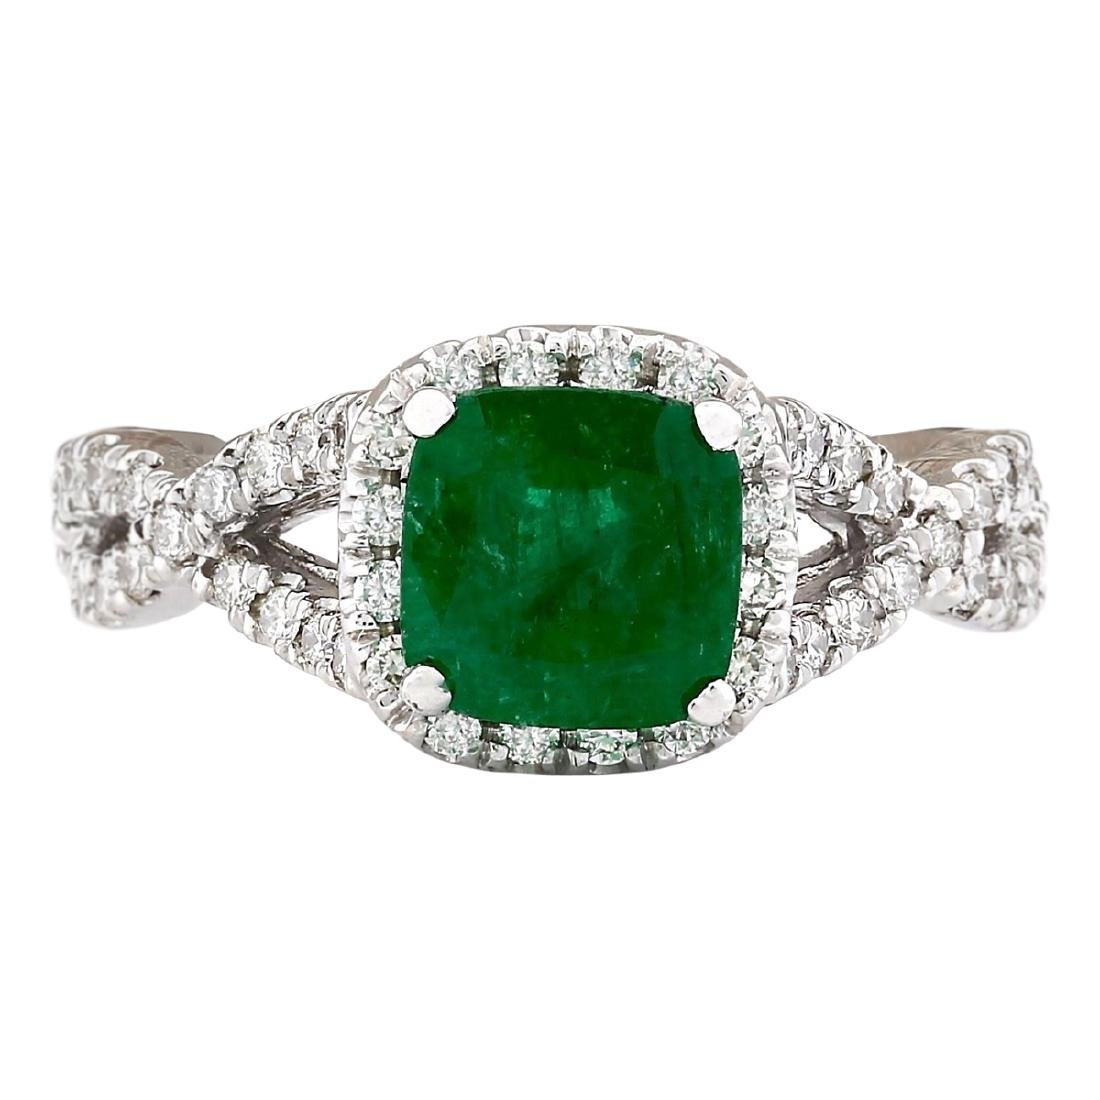 2.49 CTW Natural Emerald And Diamond Ring In 18K White